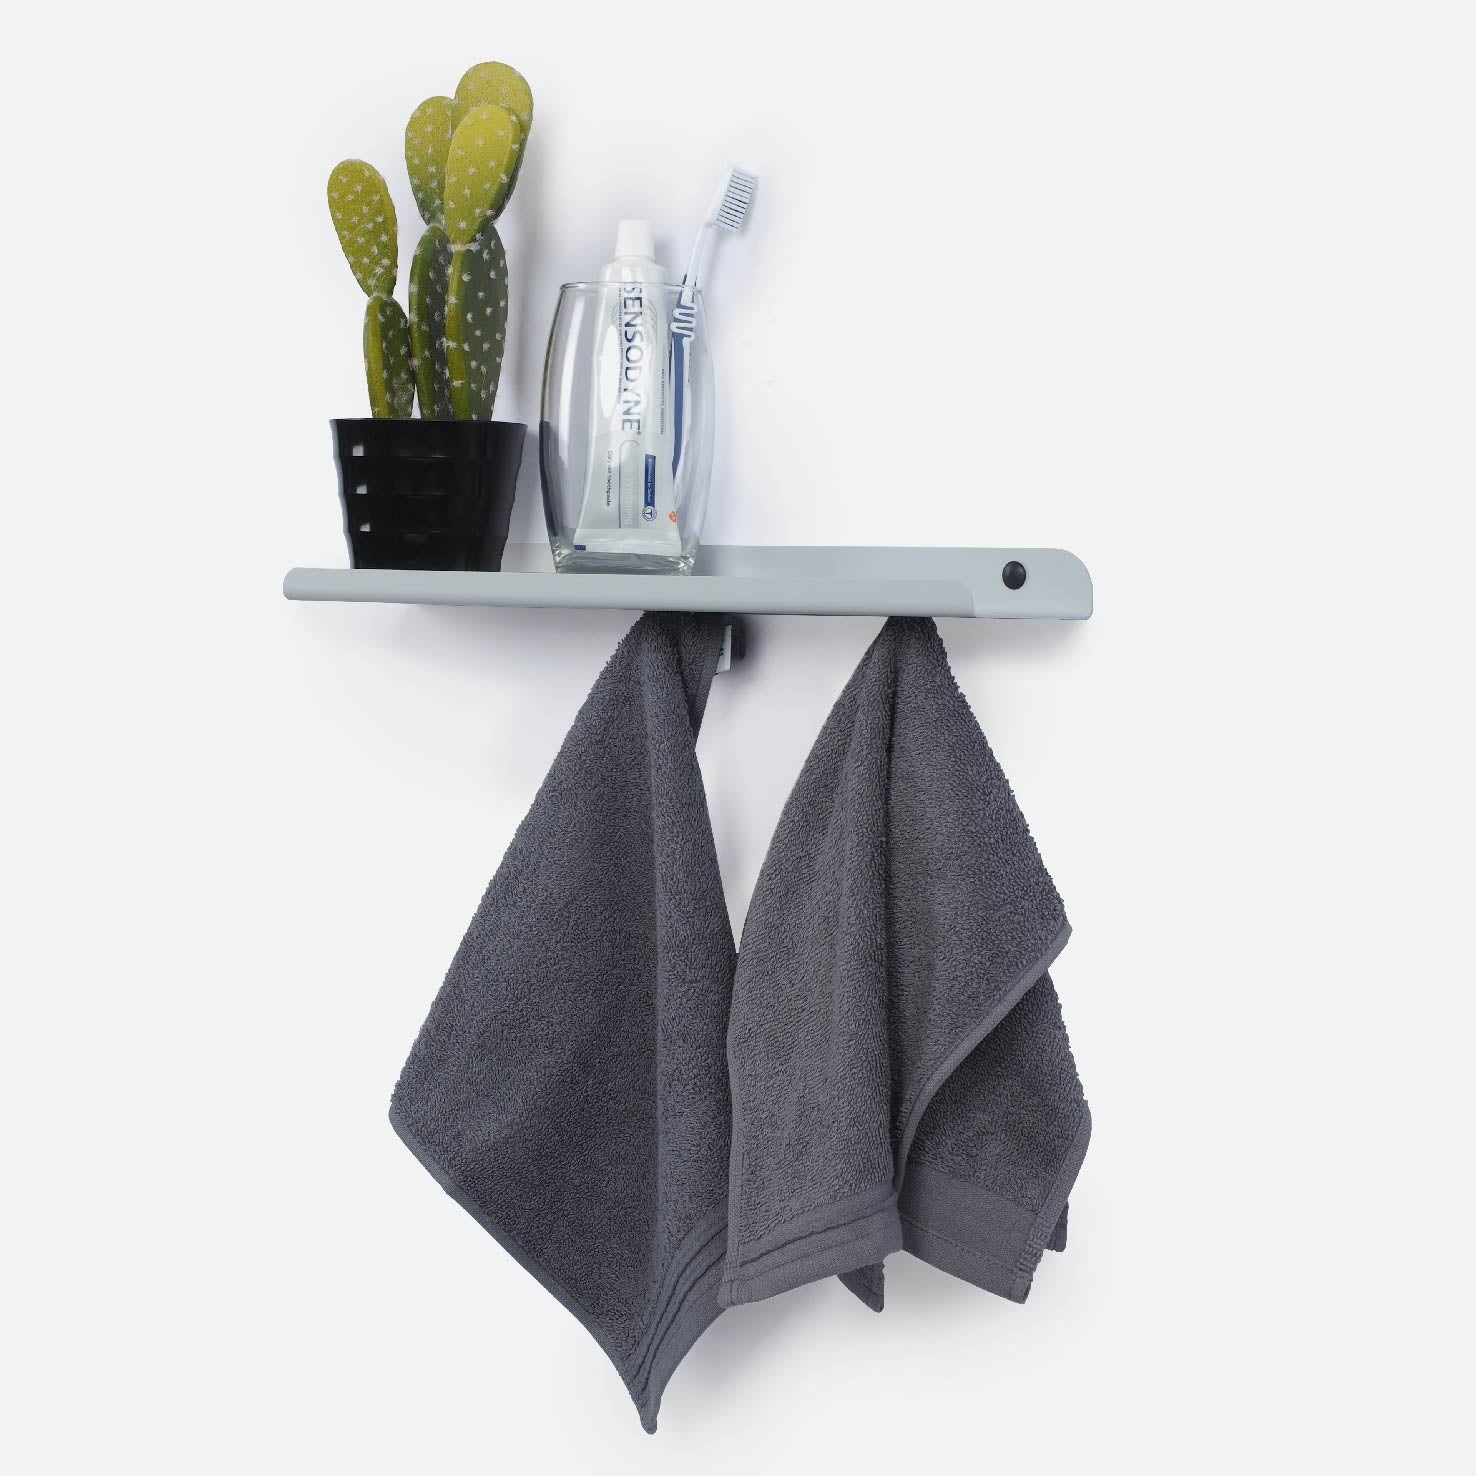 Magnetic Shelf - 2 towels